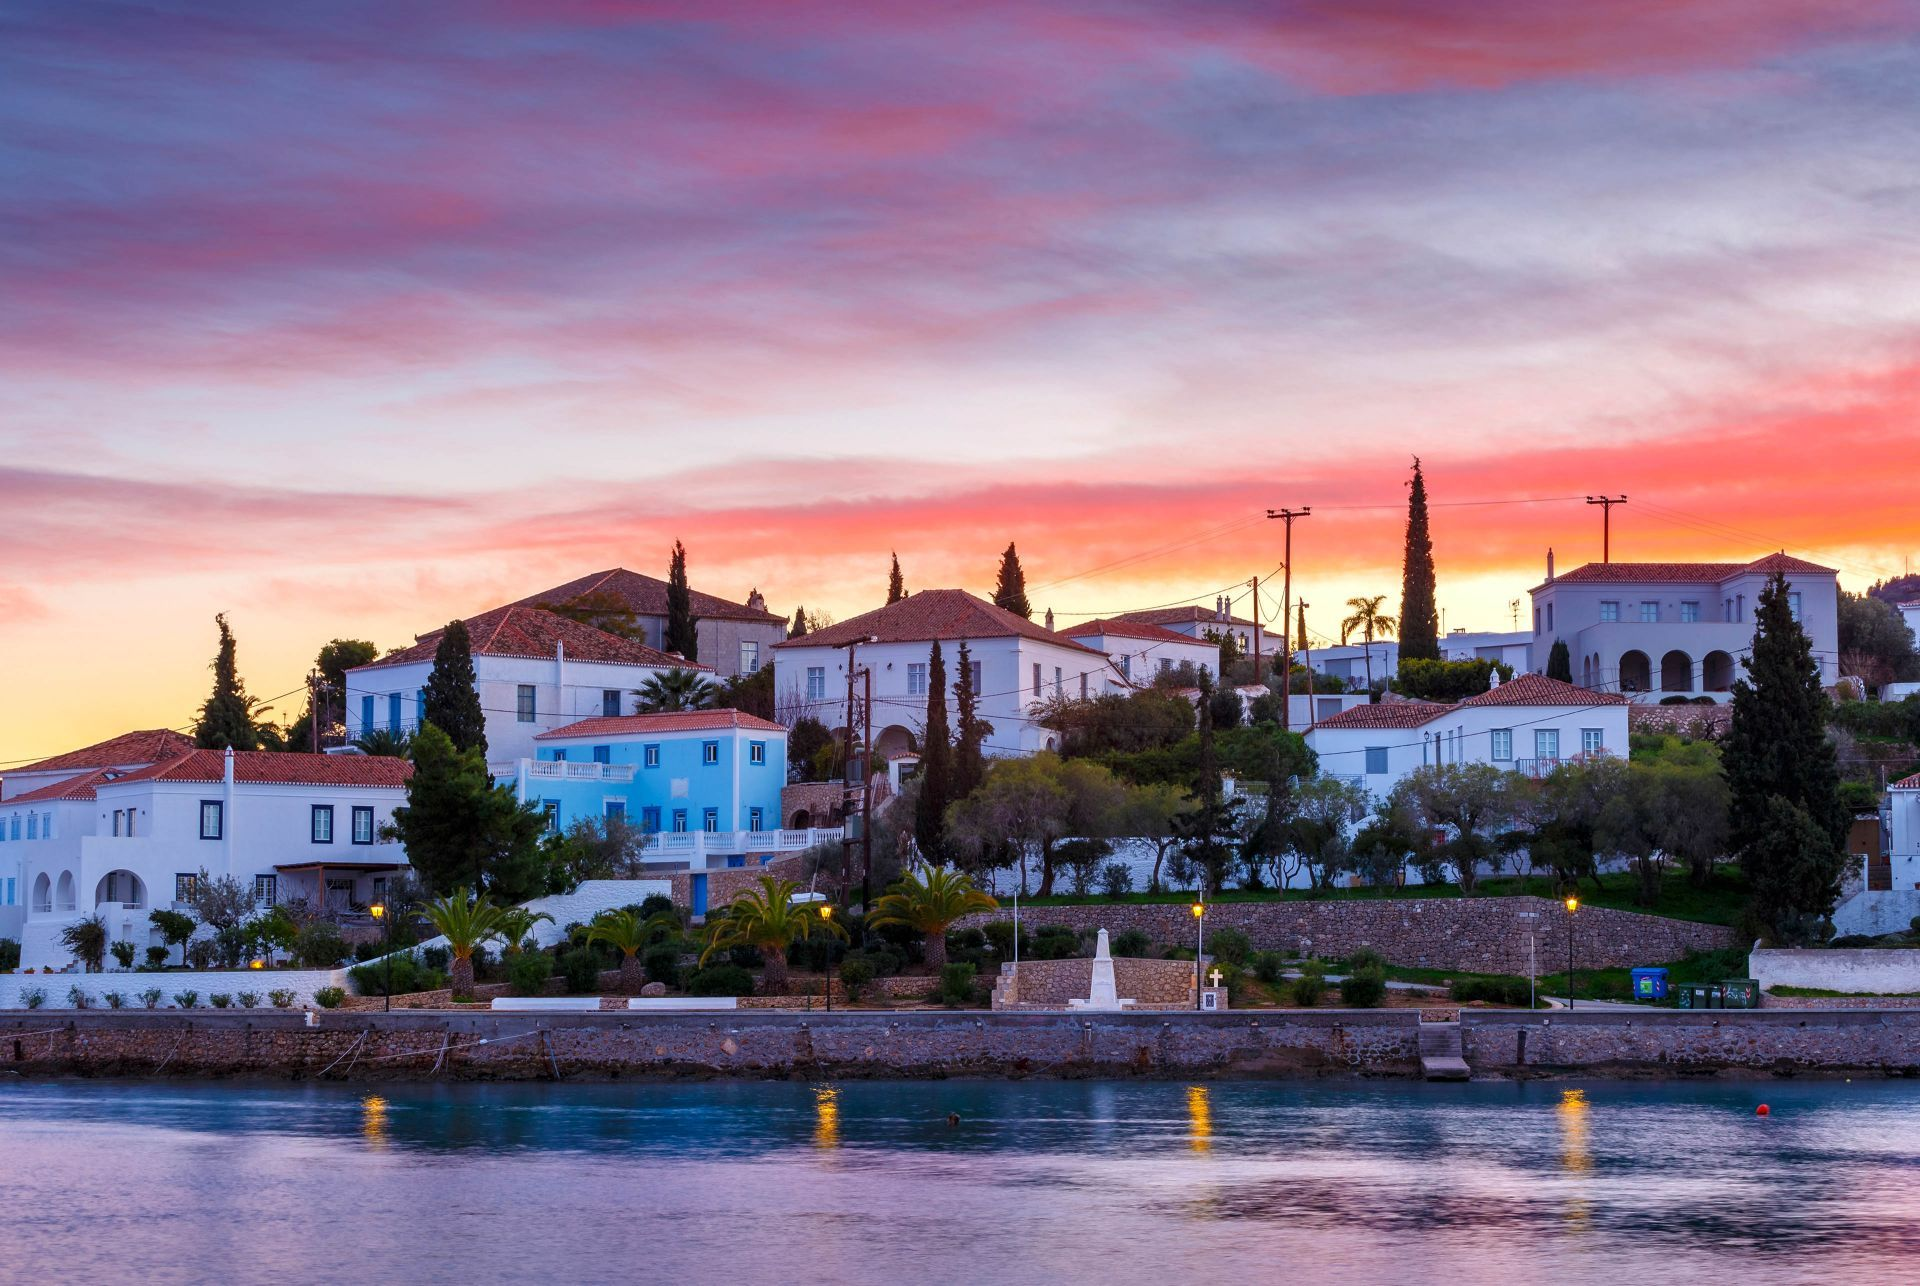 Accommodation and hotels in Spetses